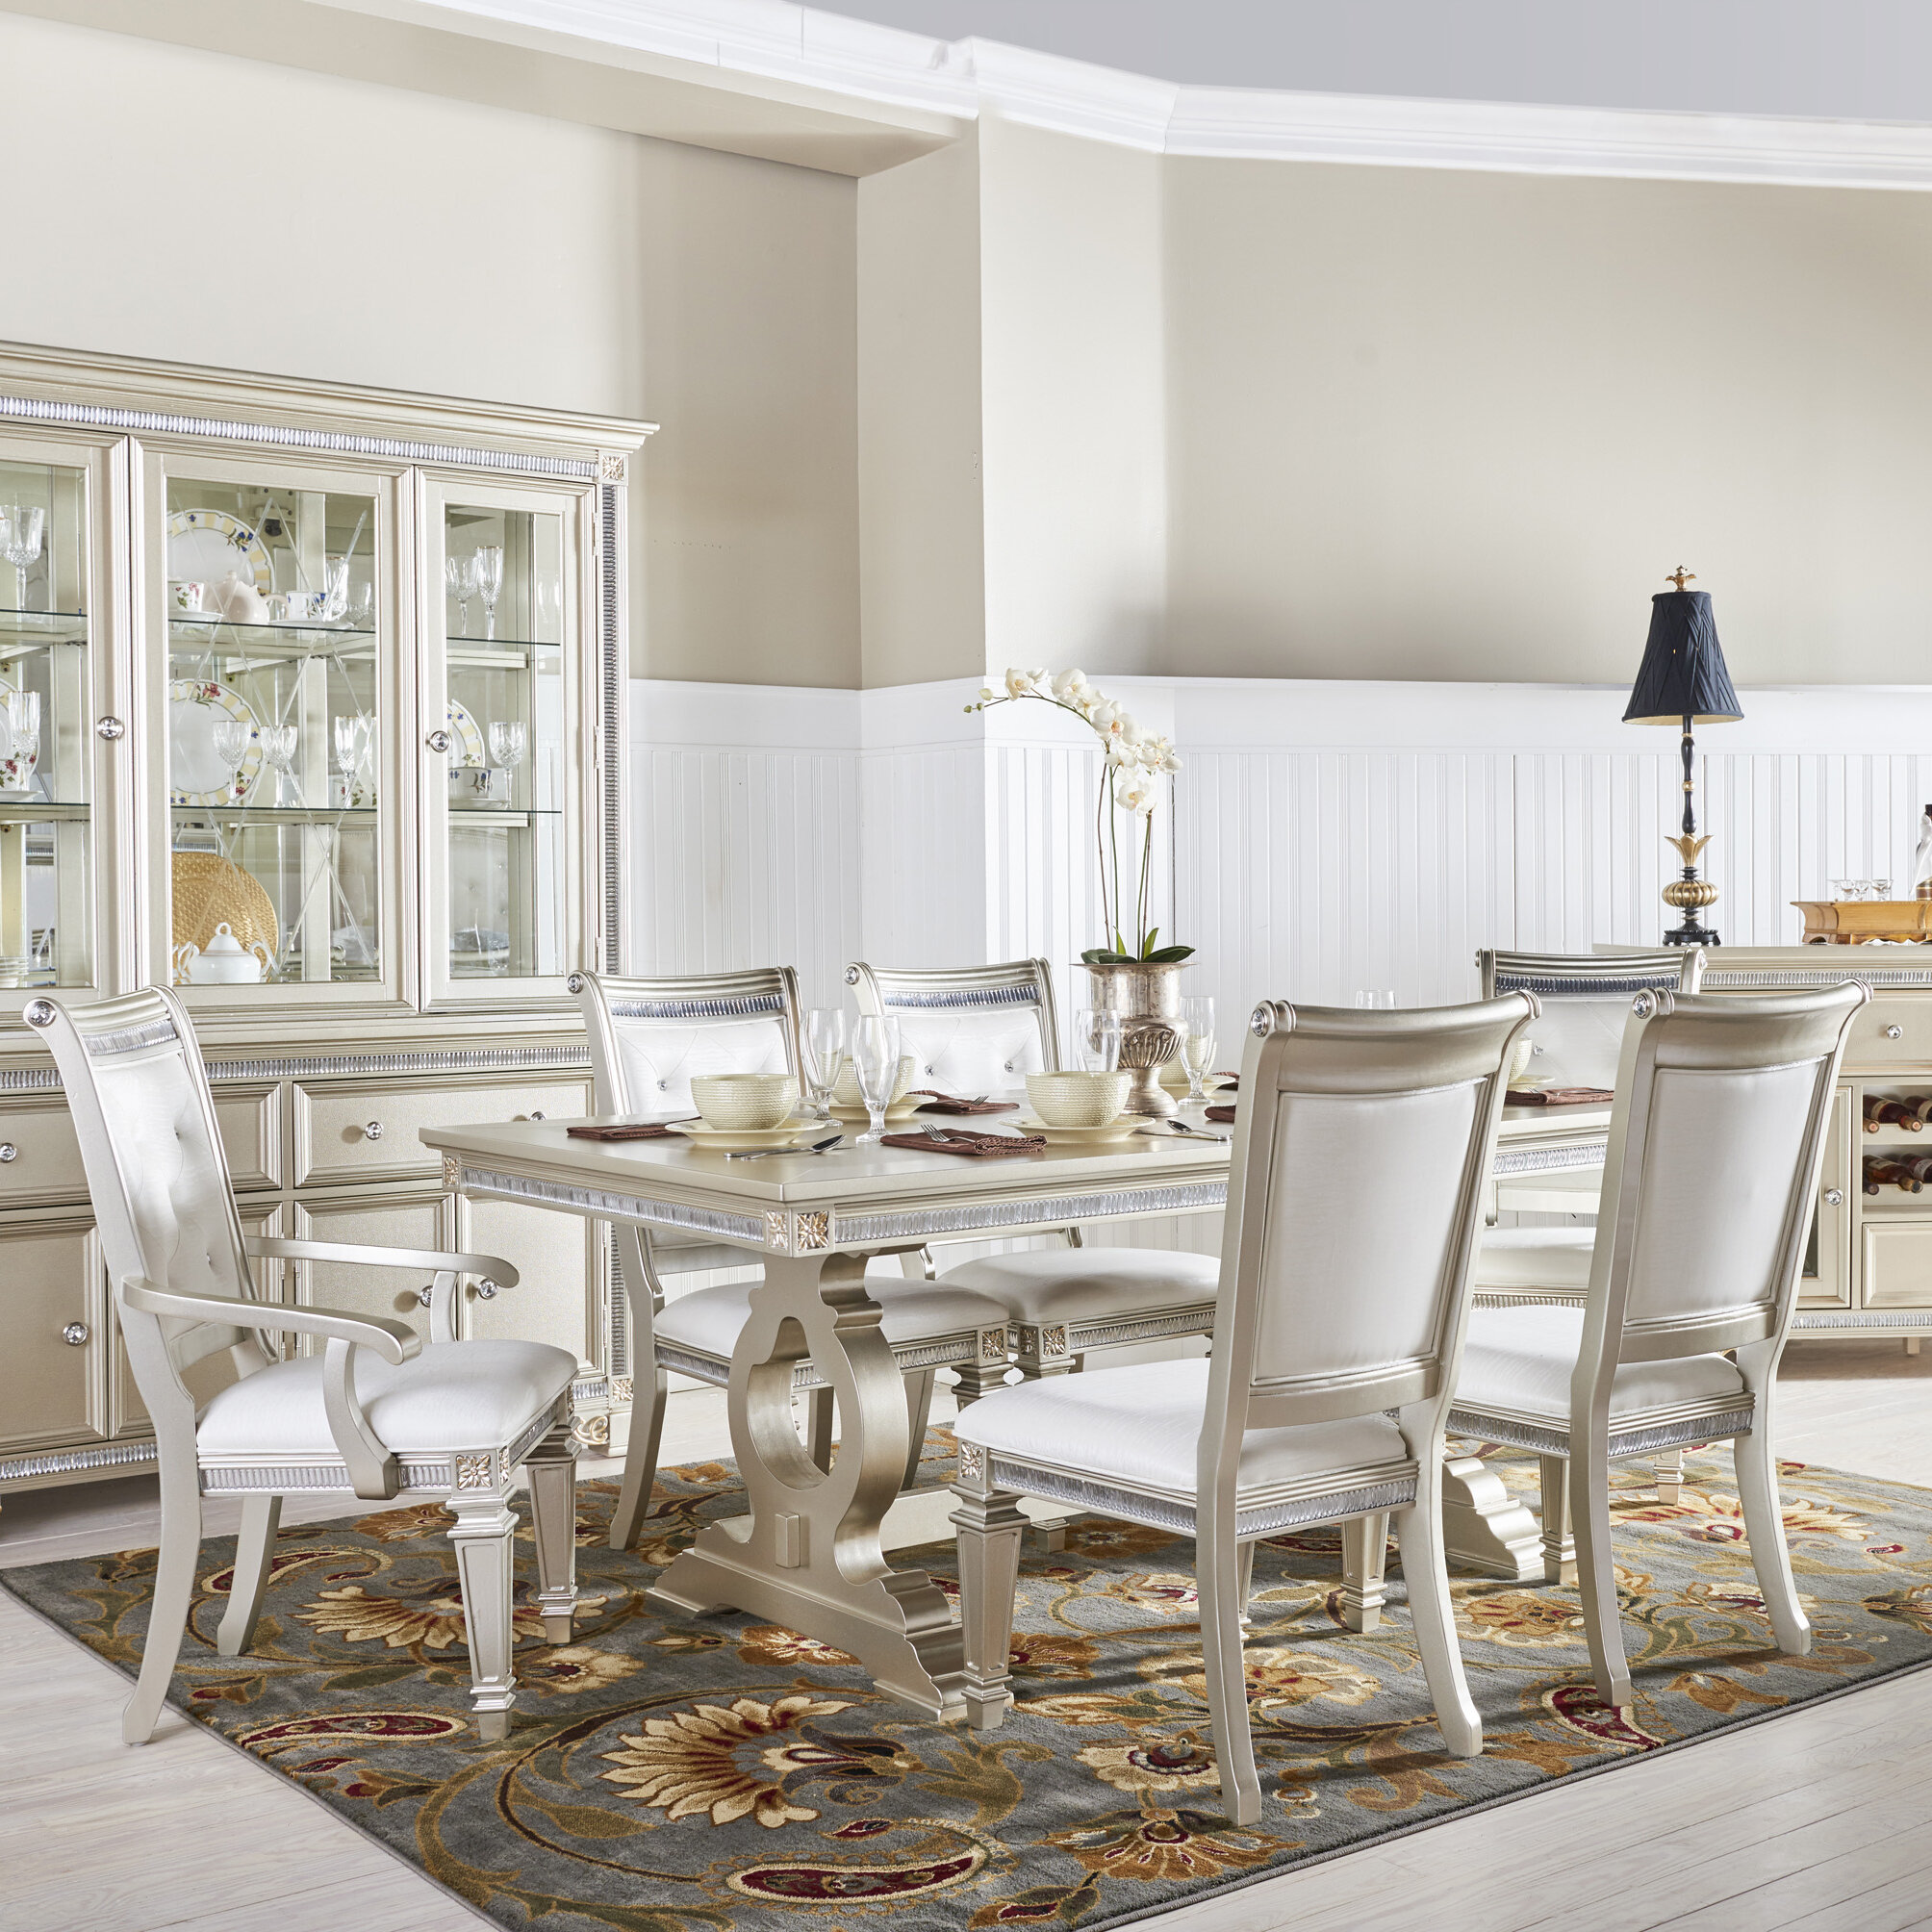 Ideal Fairfax Home Collections Tiffany 7 Piece Dining Set & Reviews  HO54